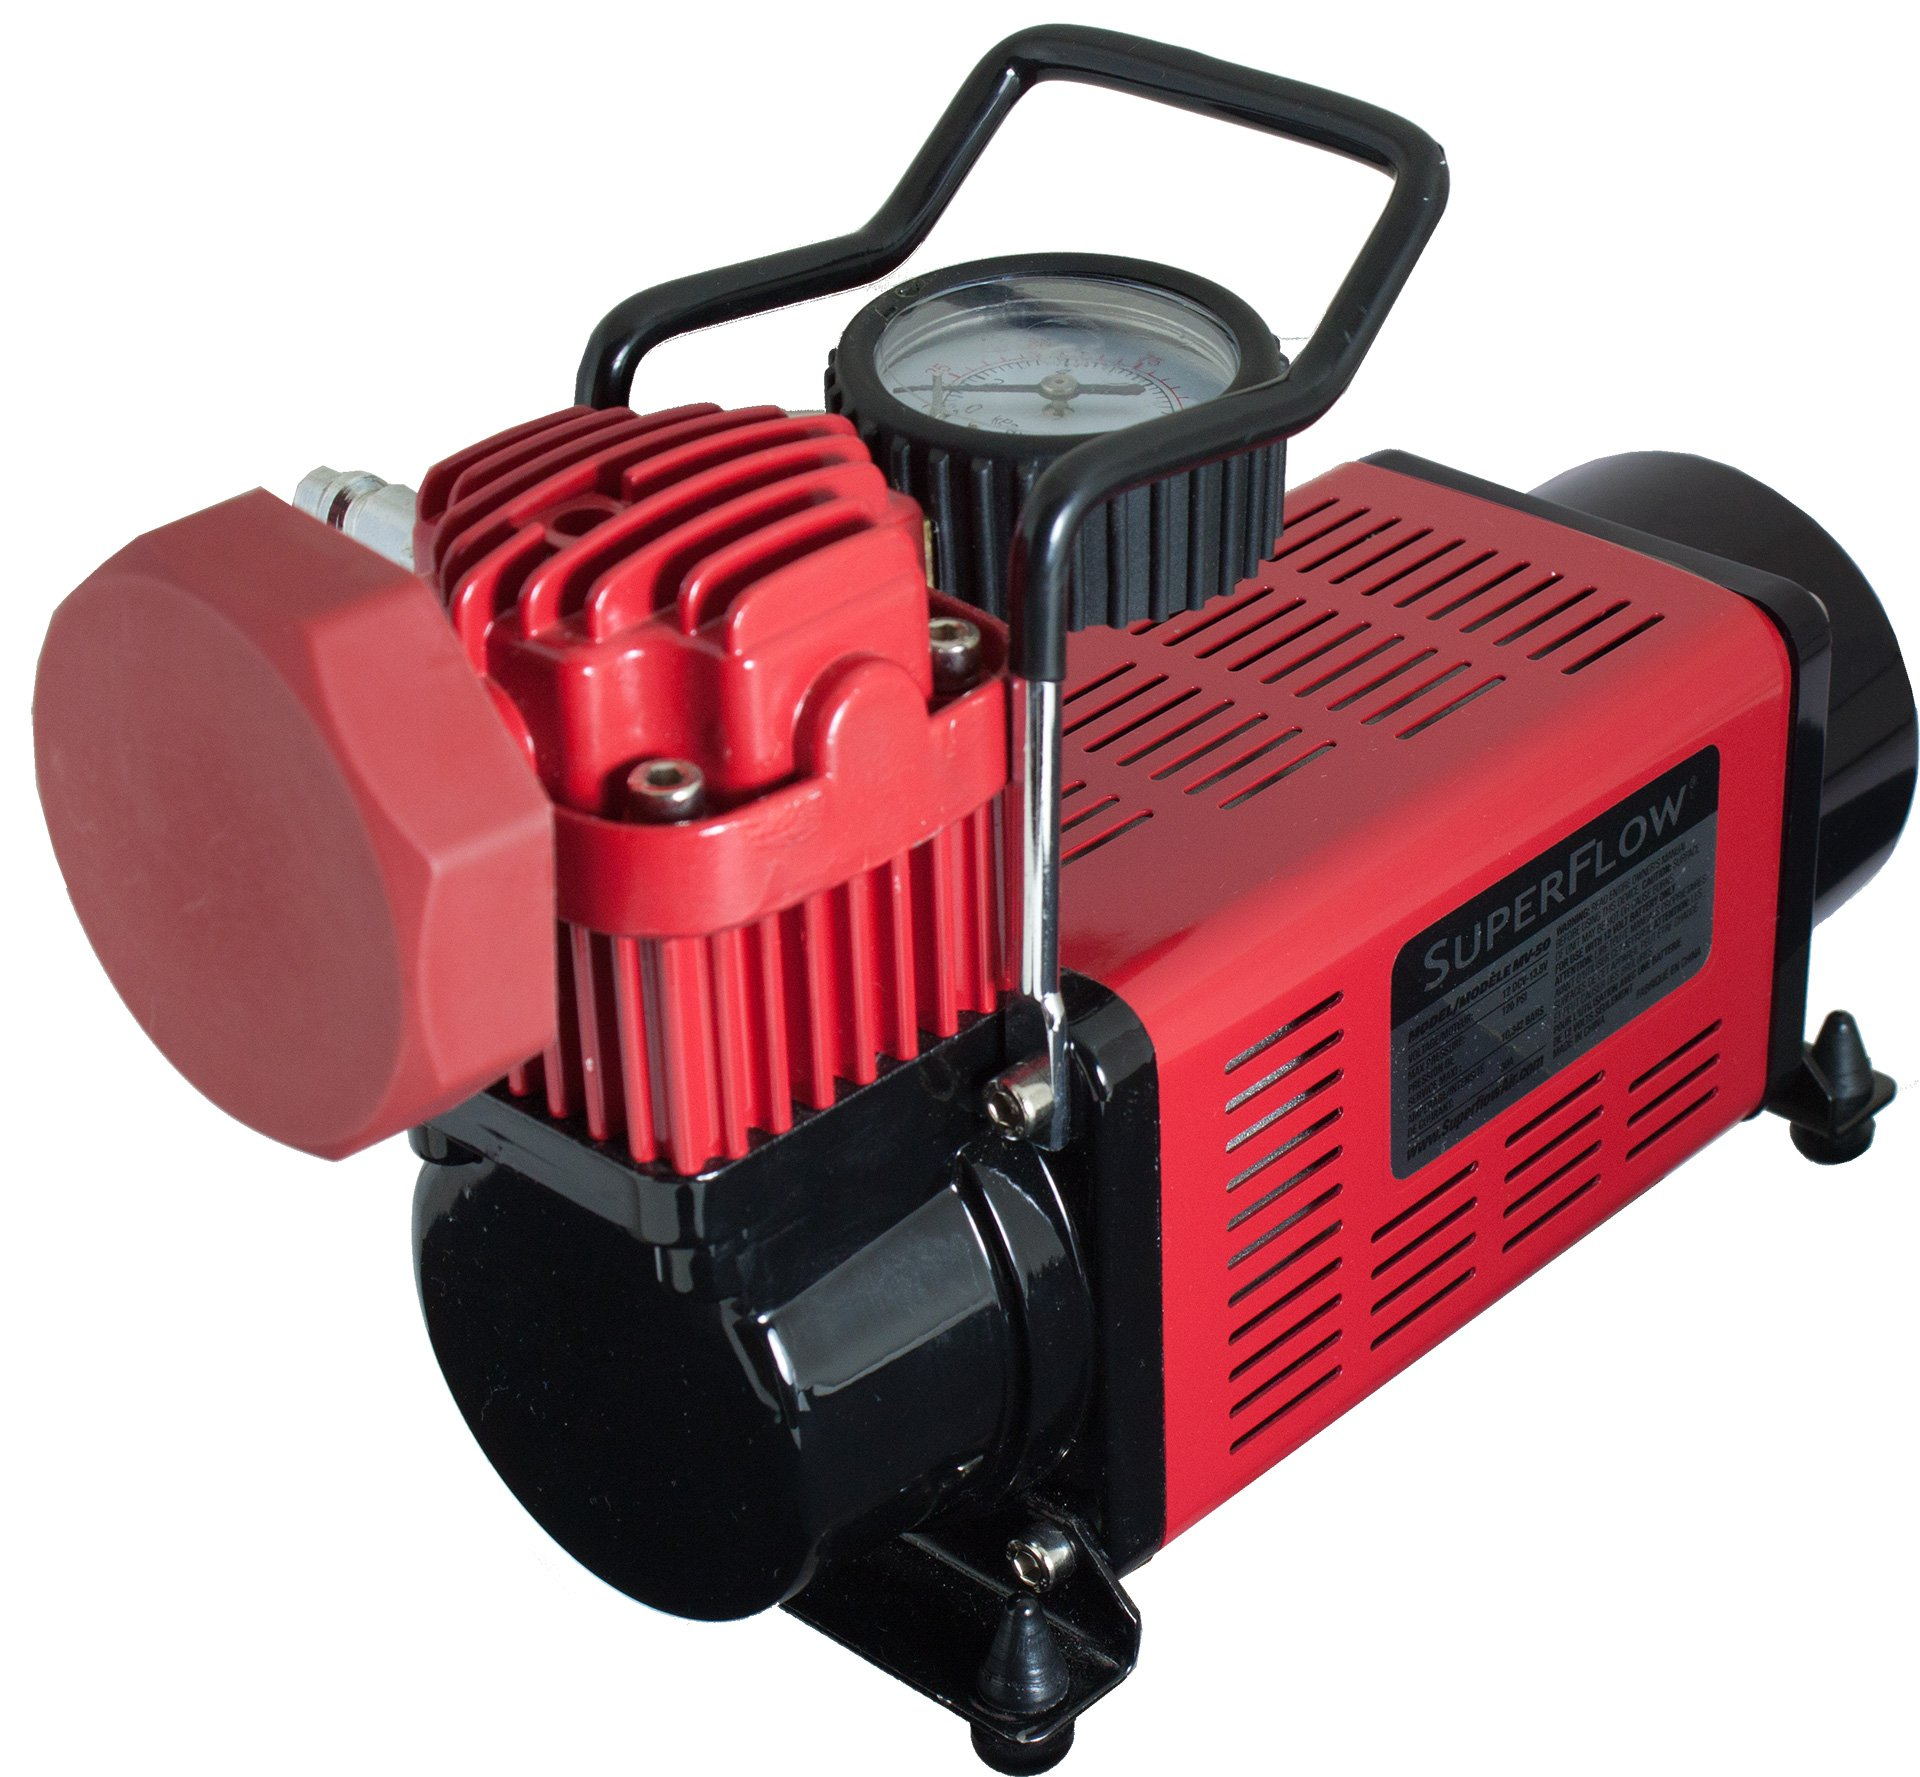 Q Industries 12 Volt Air Compressor, Portable Air Pump, 12 volt, Tire Inflator, MV-50 Air Compressor by SuperFlow for inflating full size 4 x 4, Jeep, truck, SUV and RV Tires by Q Industries (Image #5)